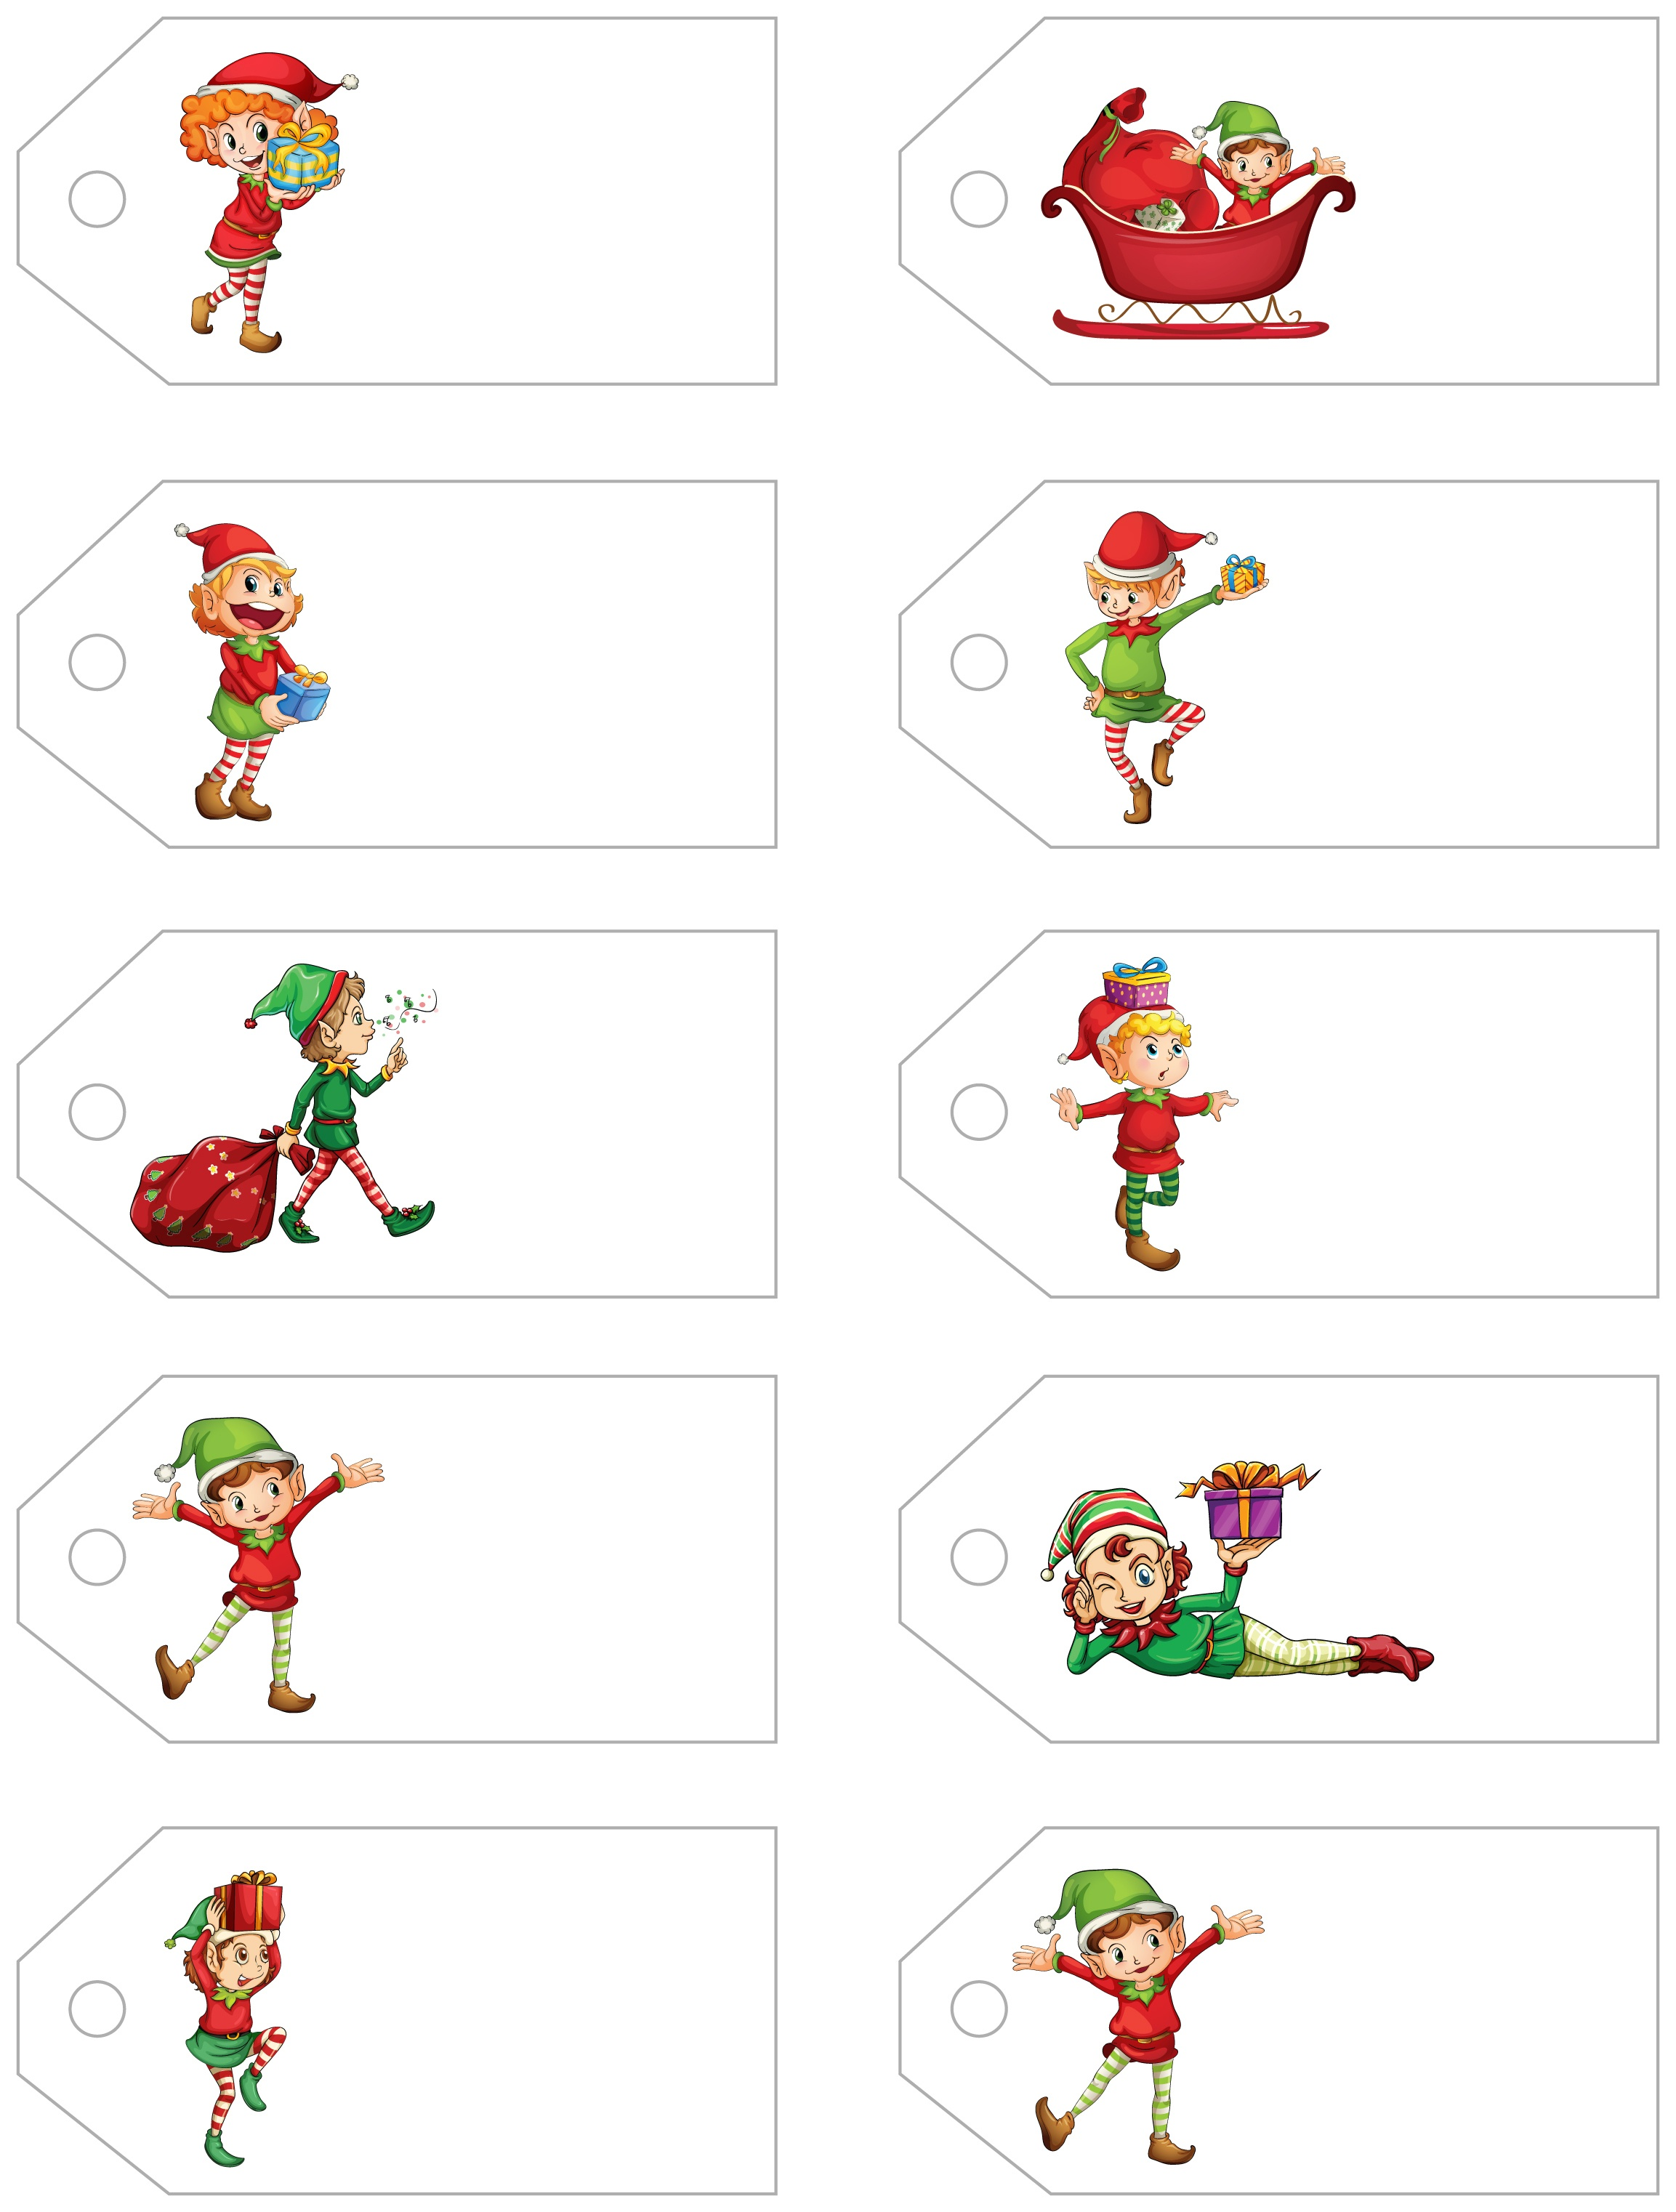 Santa's Little Gift To You! Free Printable Gift Tags And Labels - Free Printable Christmas Tags